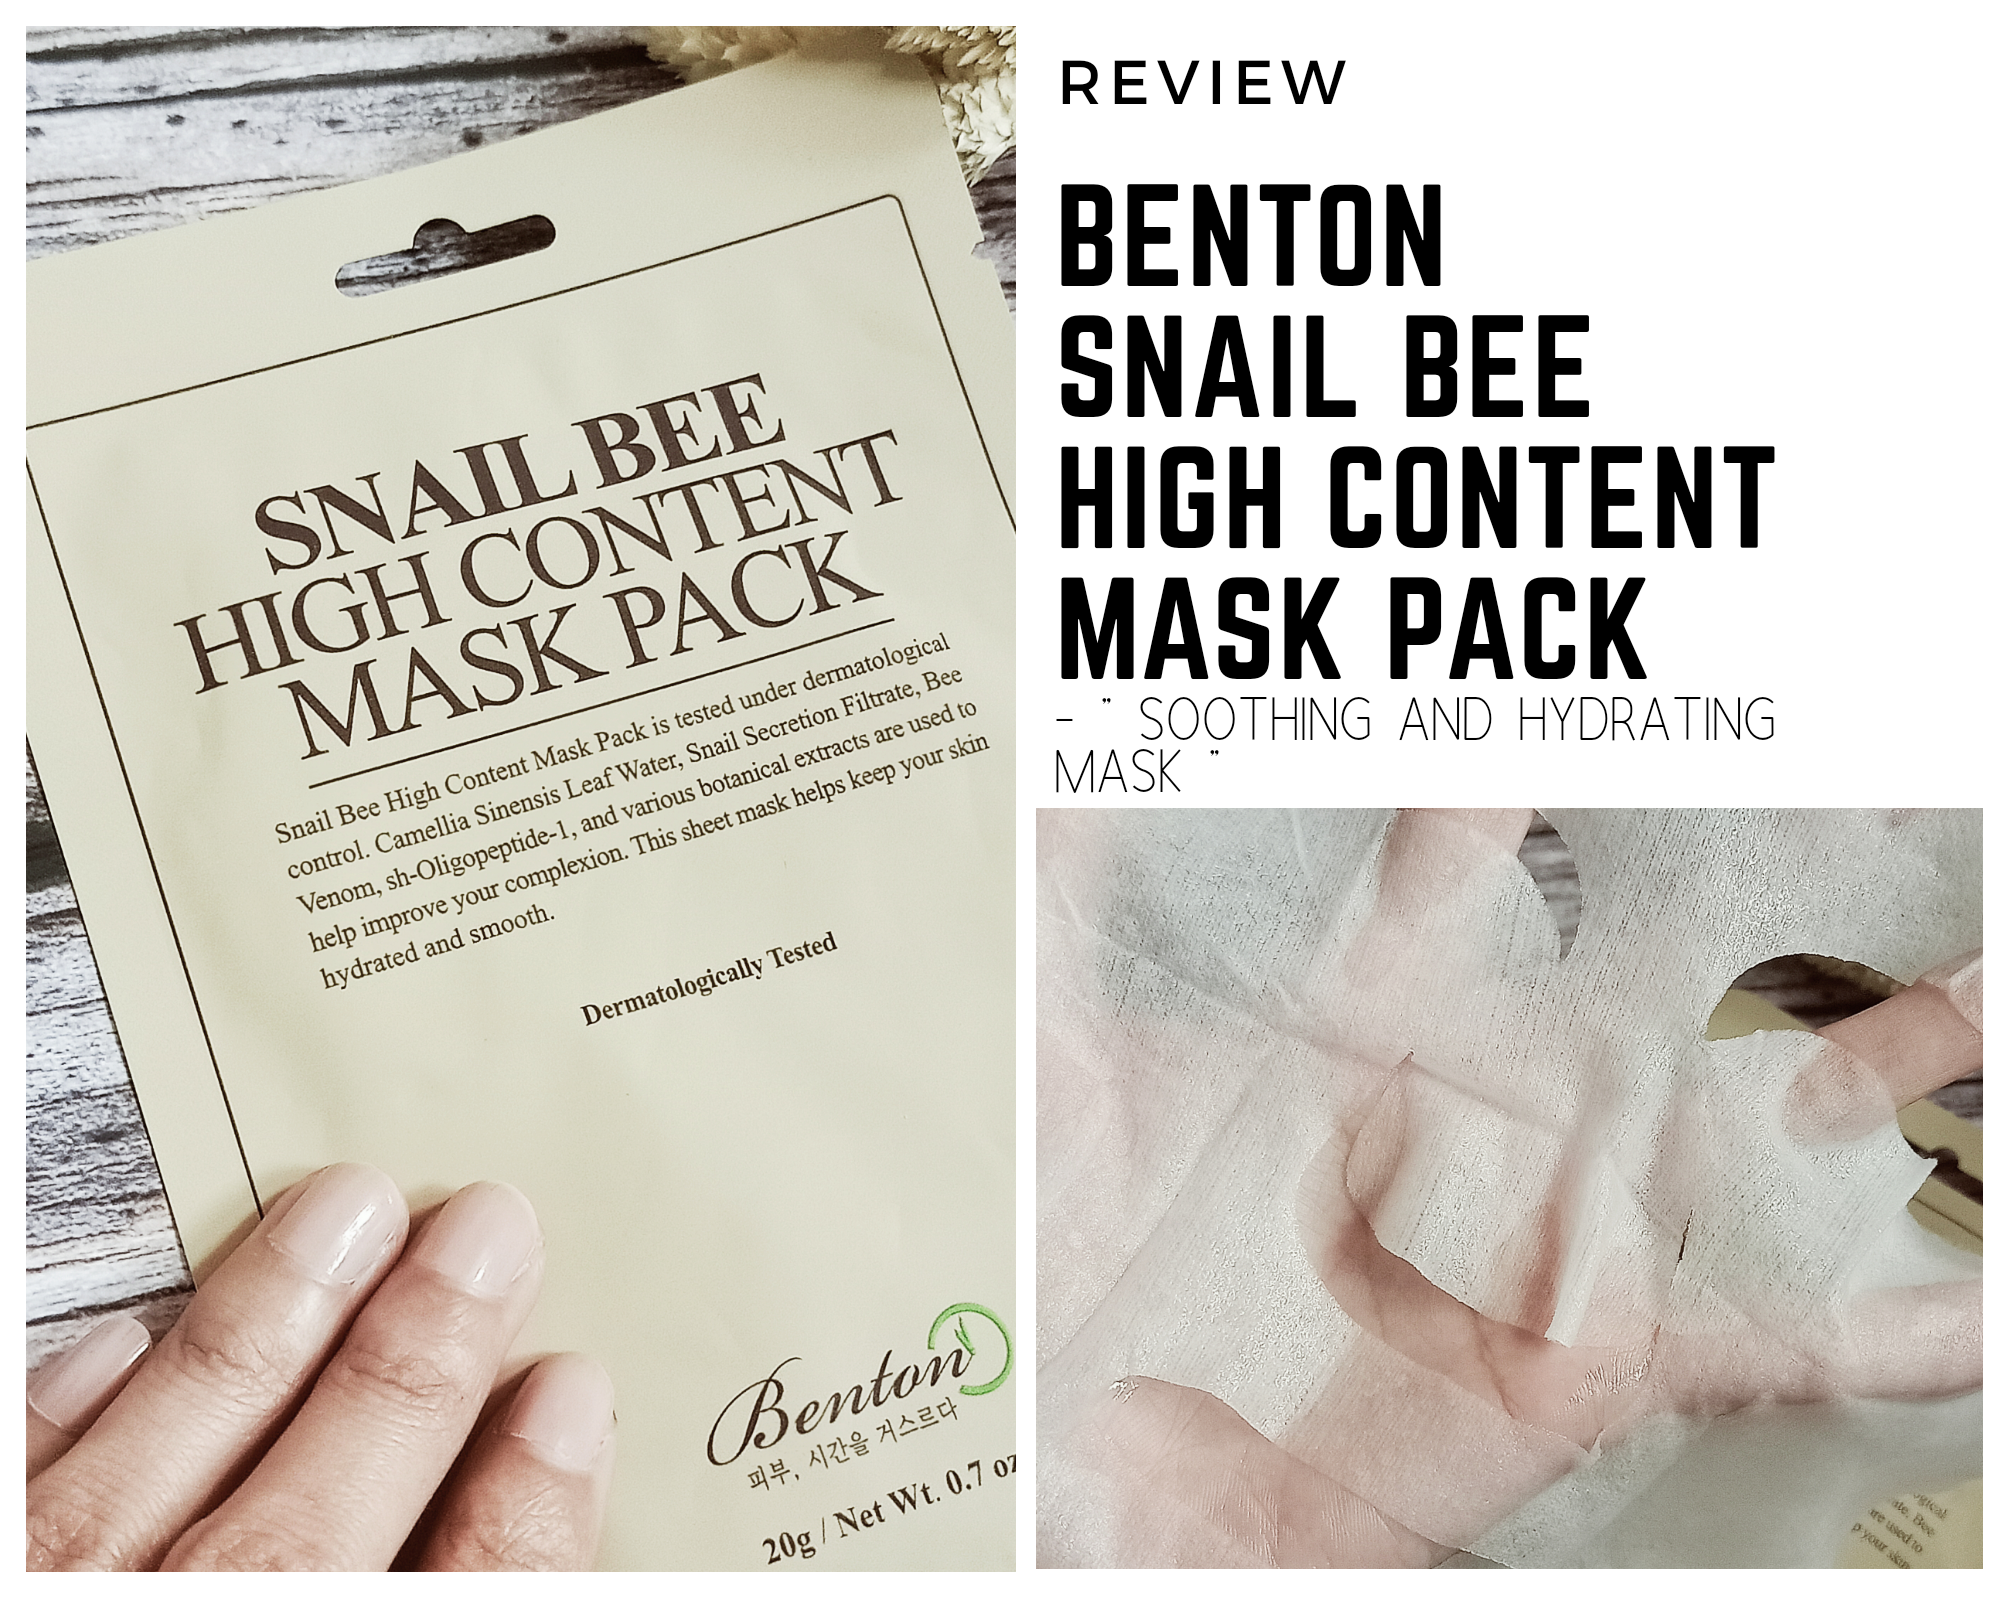 REVIEW | Benton Snail Bee High Content Mask Pack